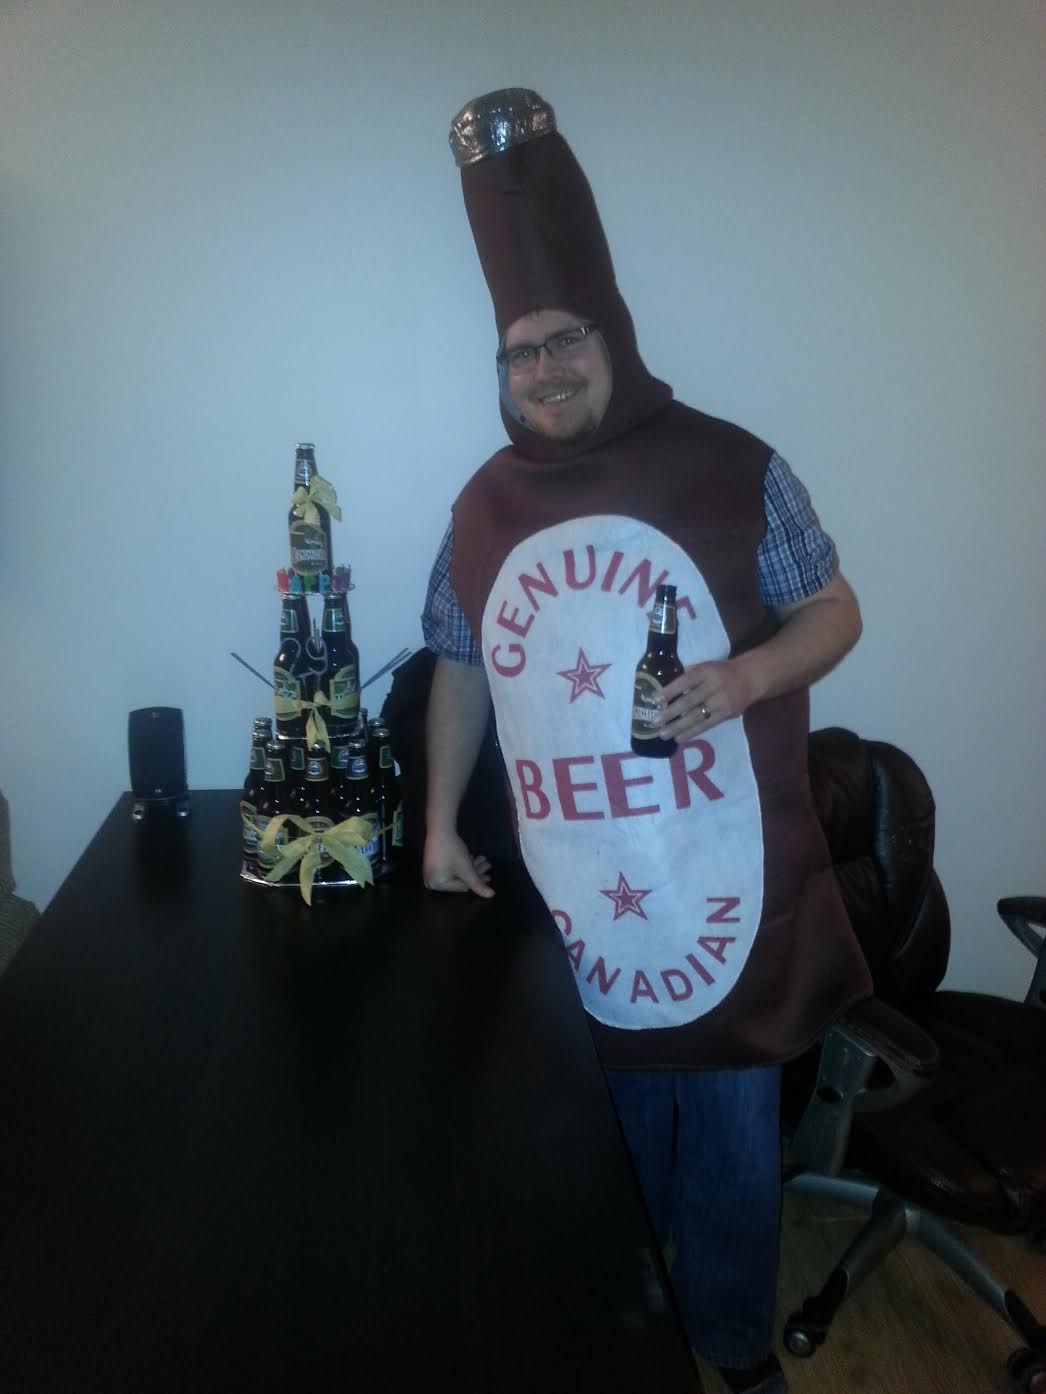 For my 29th birthday, we had beer themed party and my friends made me a beer cake and made me dress up as a beer.